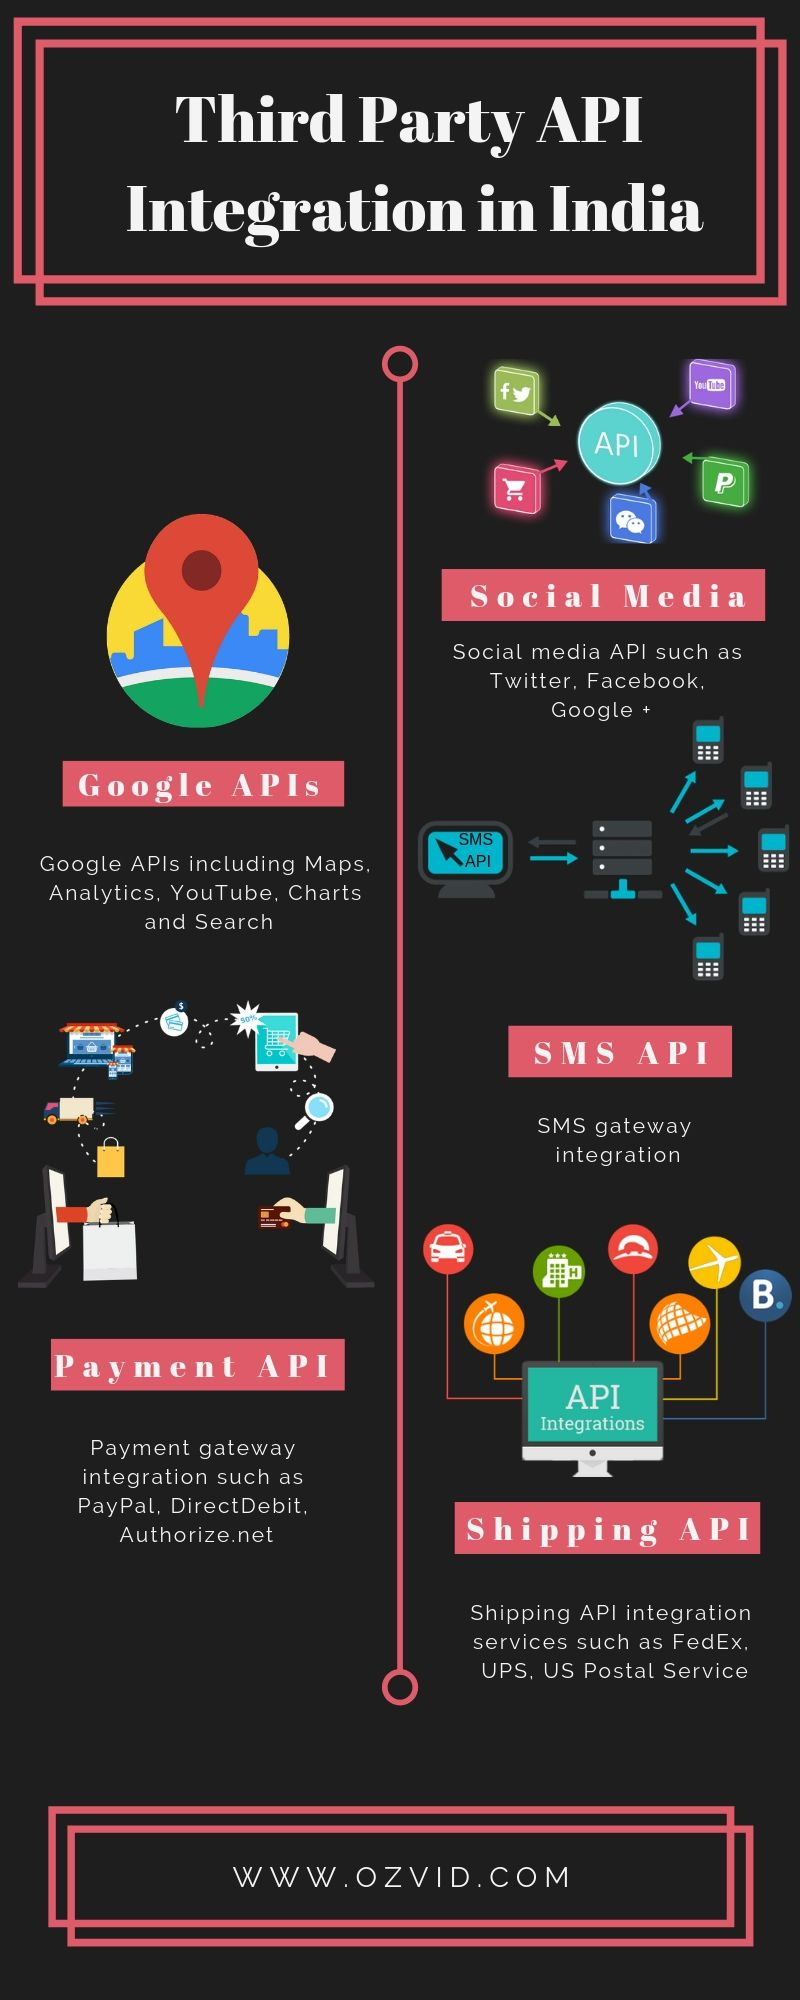 We have years of experience in API Integration Services for